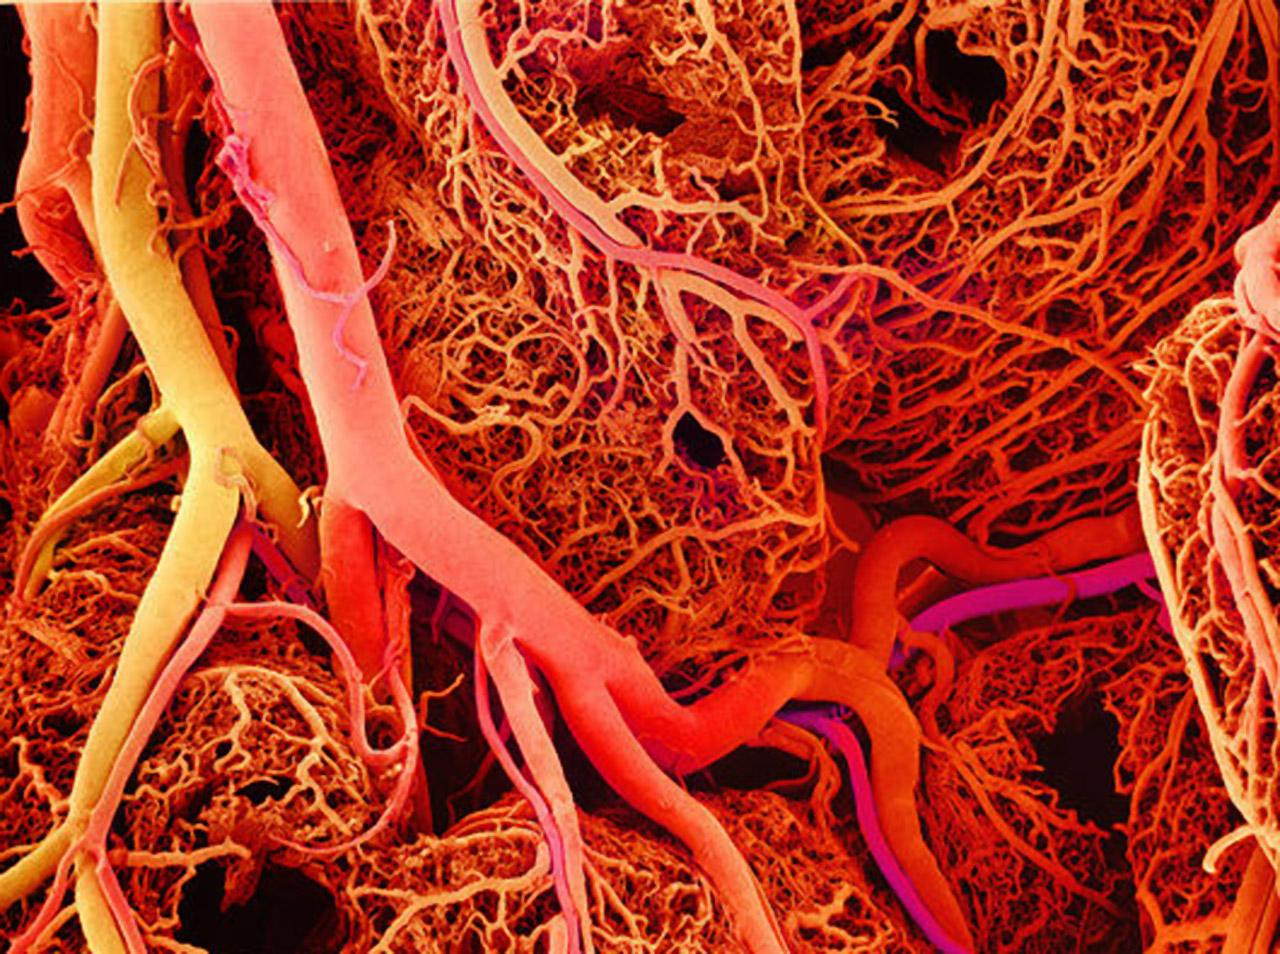 Researches Find Way To 3d Print Blood Vessels